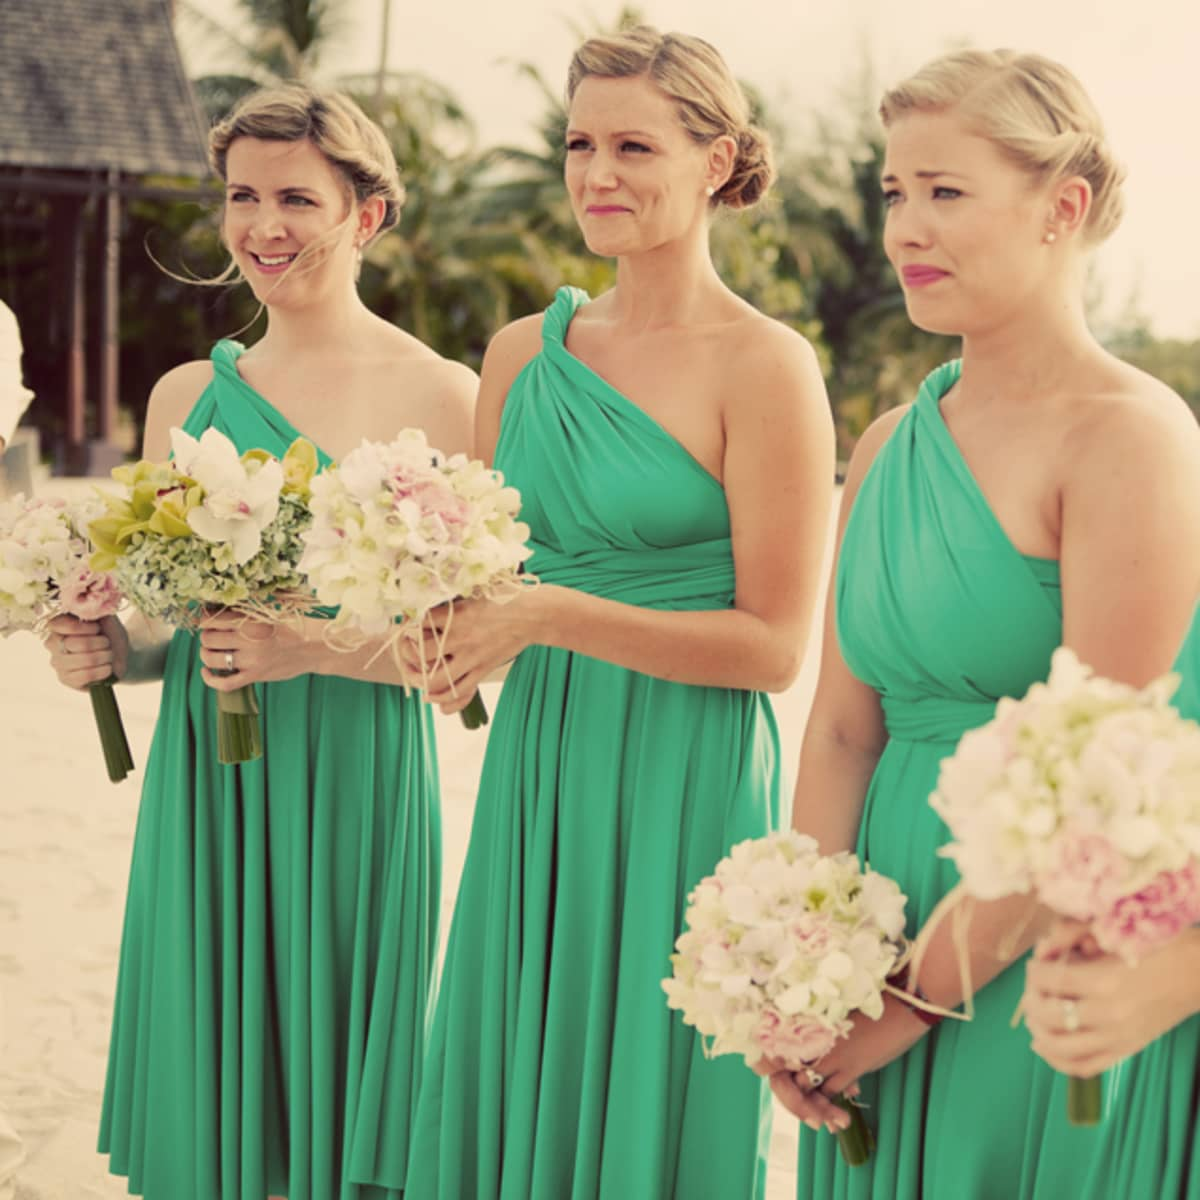 Tropical bridesmaid dress choice image braidsmaid dress a wedding in paradise the bridesmaids wear green dresses and carry tropical blooms ombrellifo choice image ombrellifo Gallery